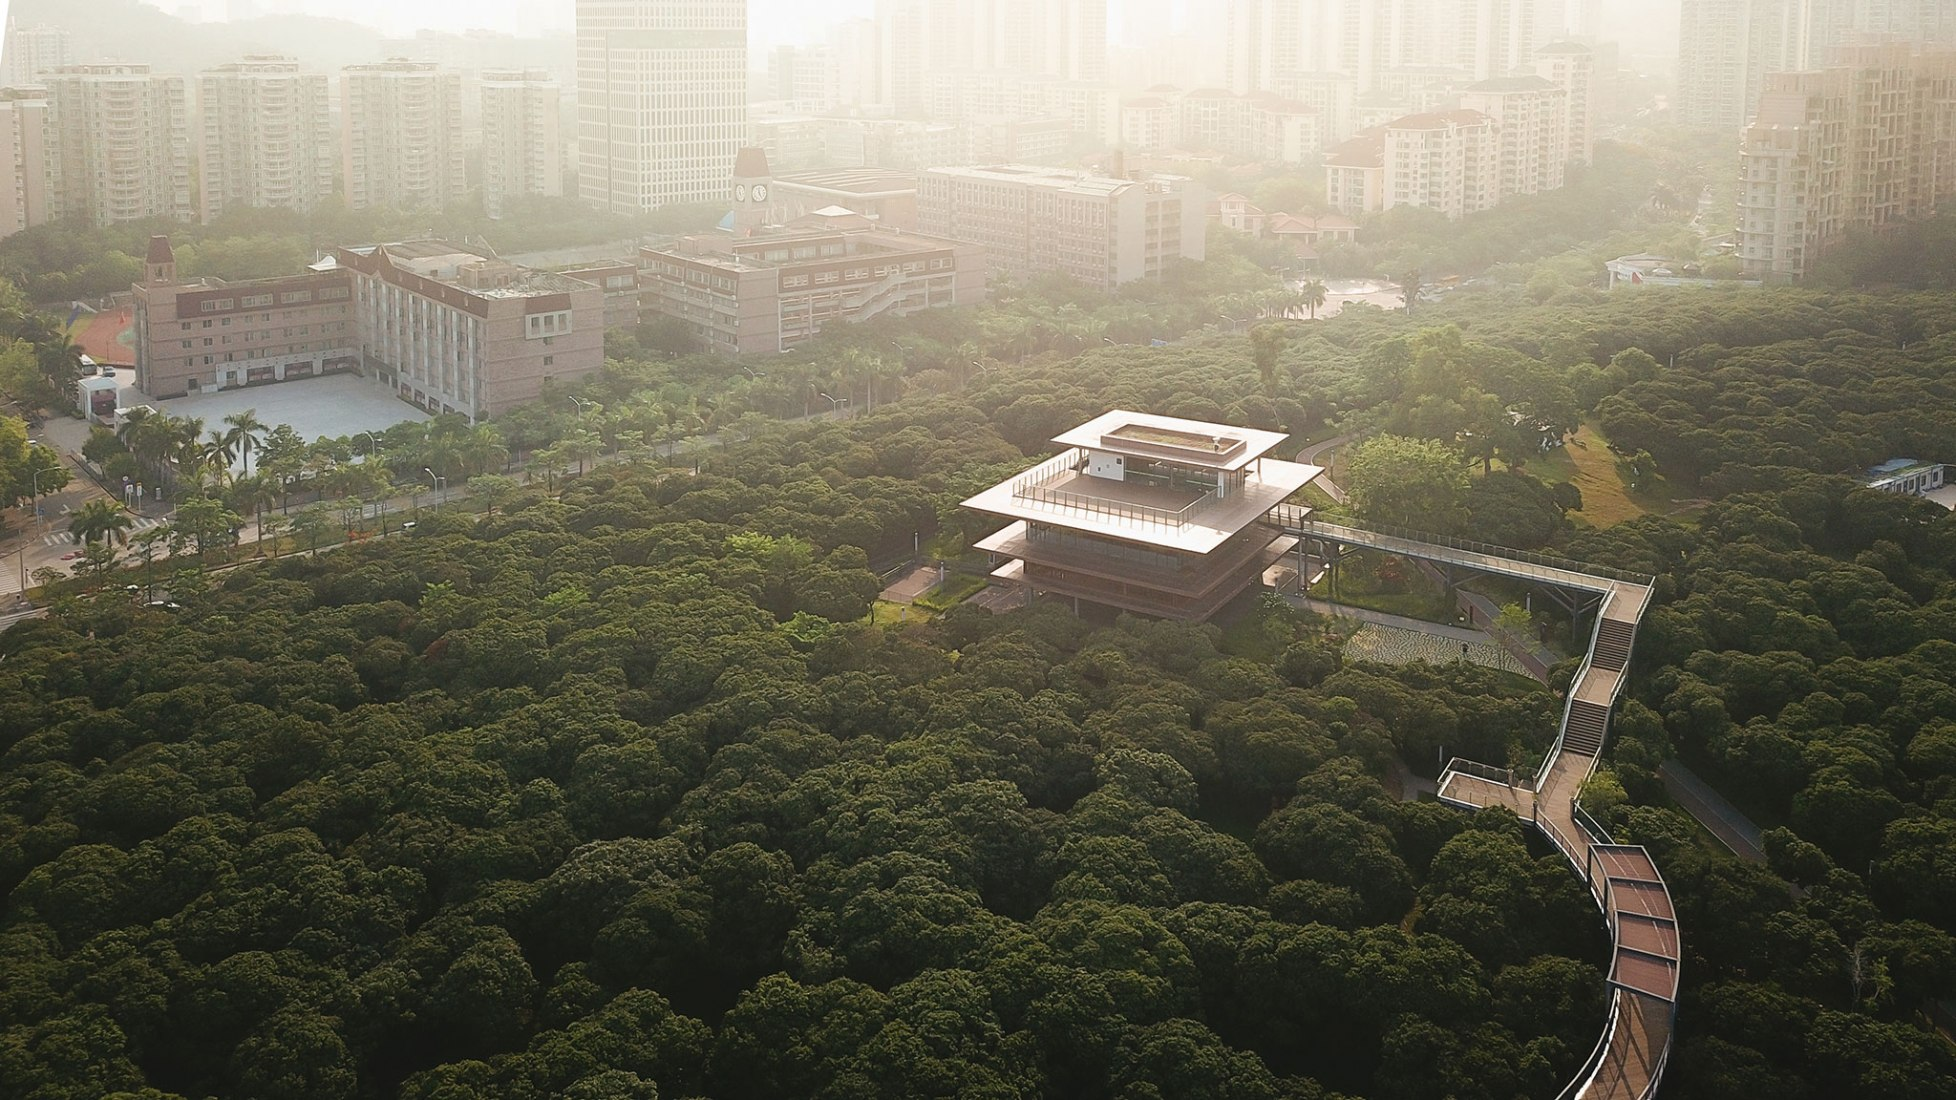 Overview. Xiangmi Park Science Library by MLA+. Photograph by Vlad Feoktistov